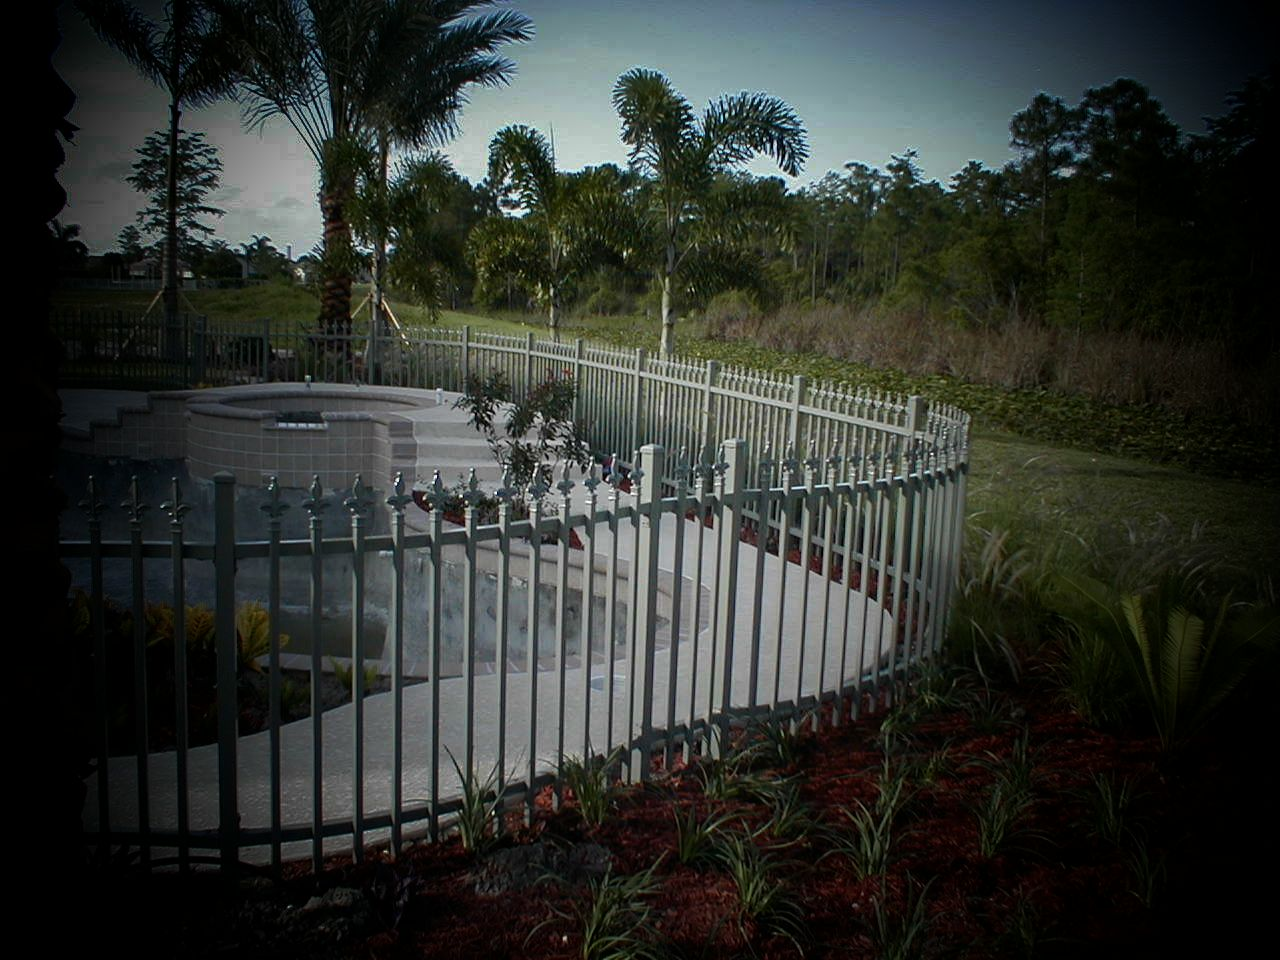 West palm beach welded aluminum fence manufacturer and